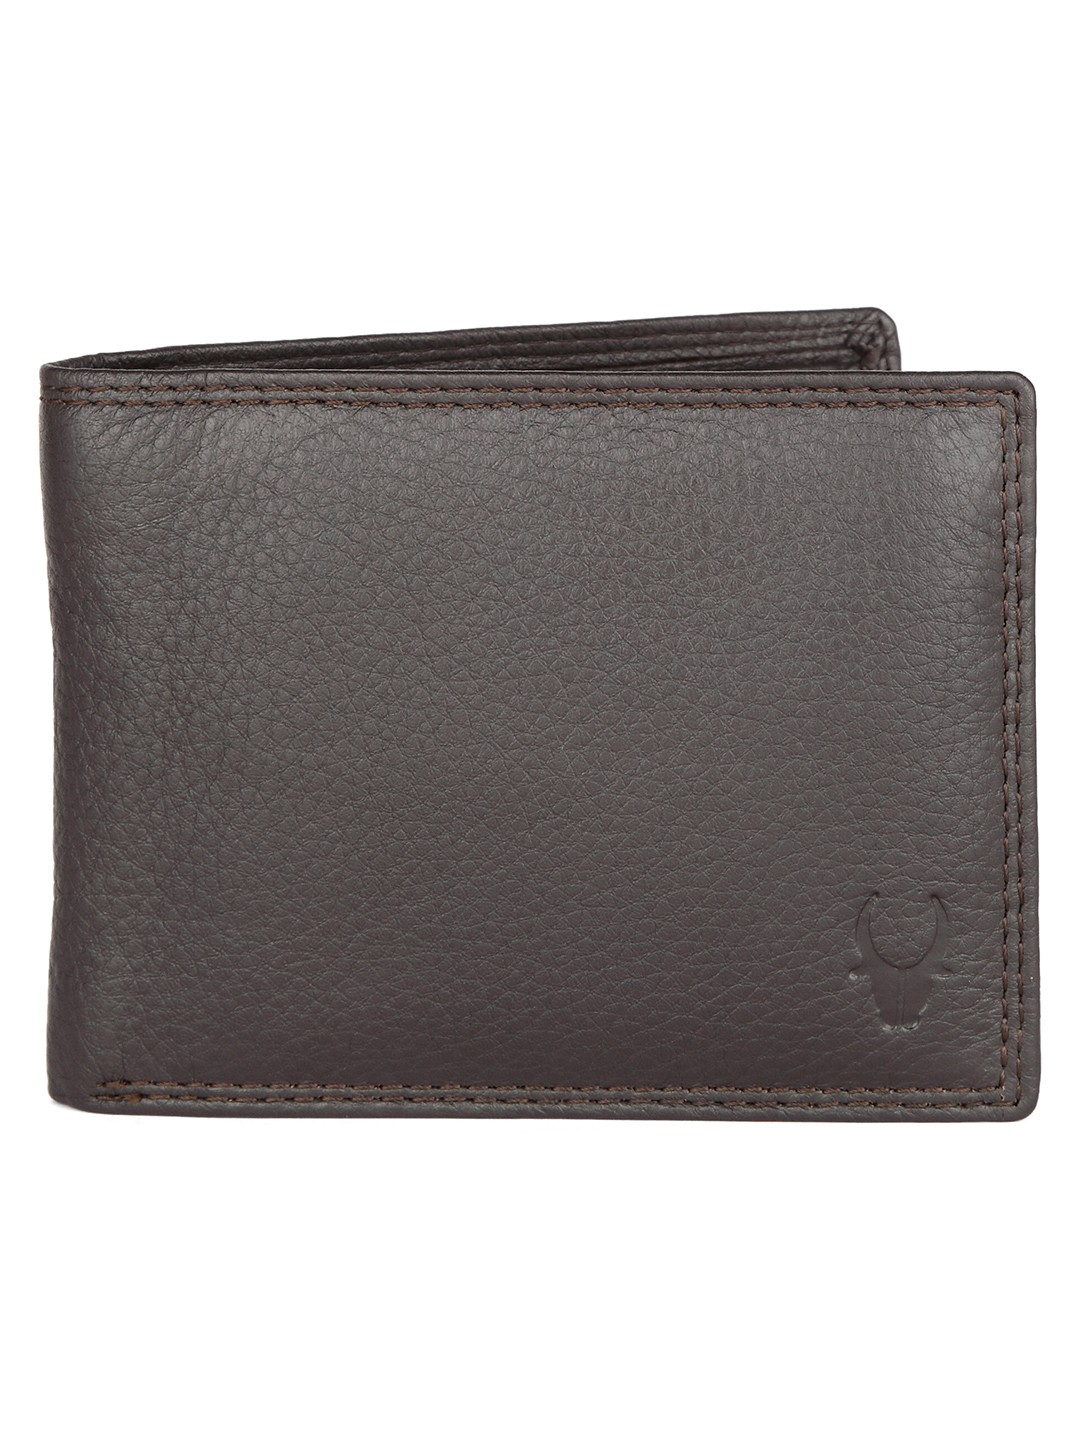 WildHorn | WildHorn RFID Protected High Quality Genuine Leather Brown Wallet for Men